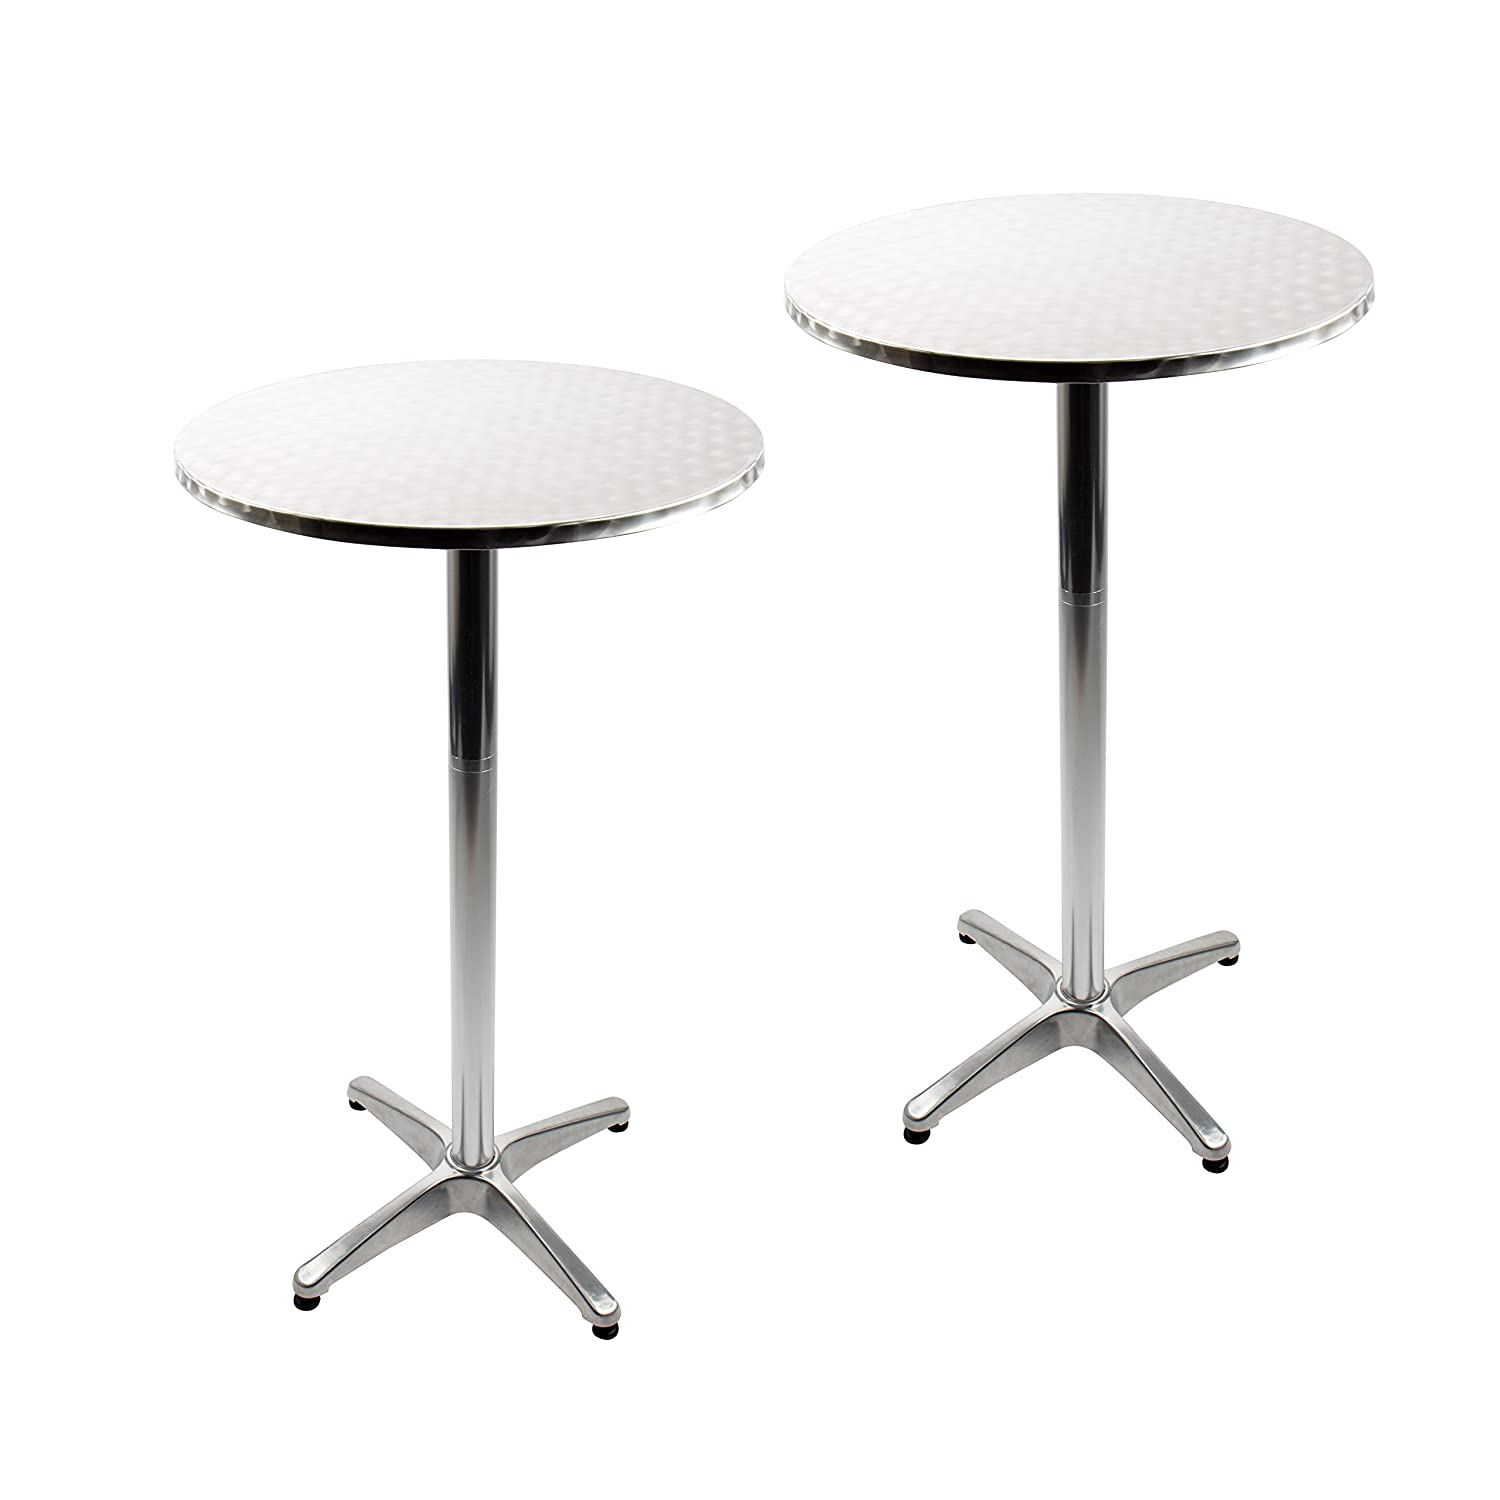 Vanage Aluminium Table with Adjustable Height – Bistro Table – Dimensions: Approx. 60 x 70/110 cm – Round Table Perfect as a Garden Table, Balcony or Terrace Table VG-9450